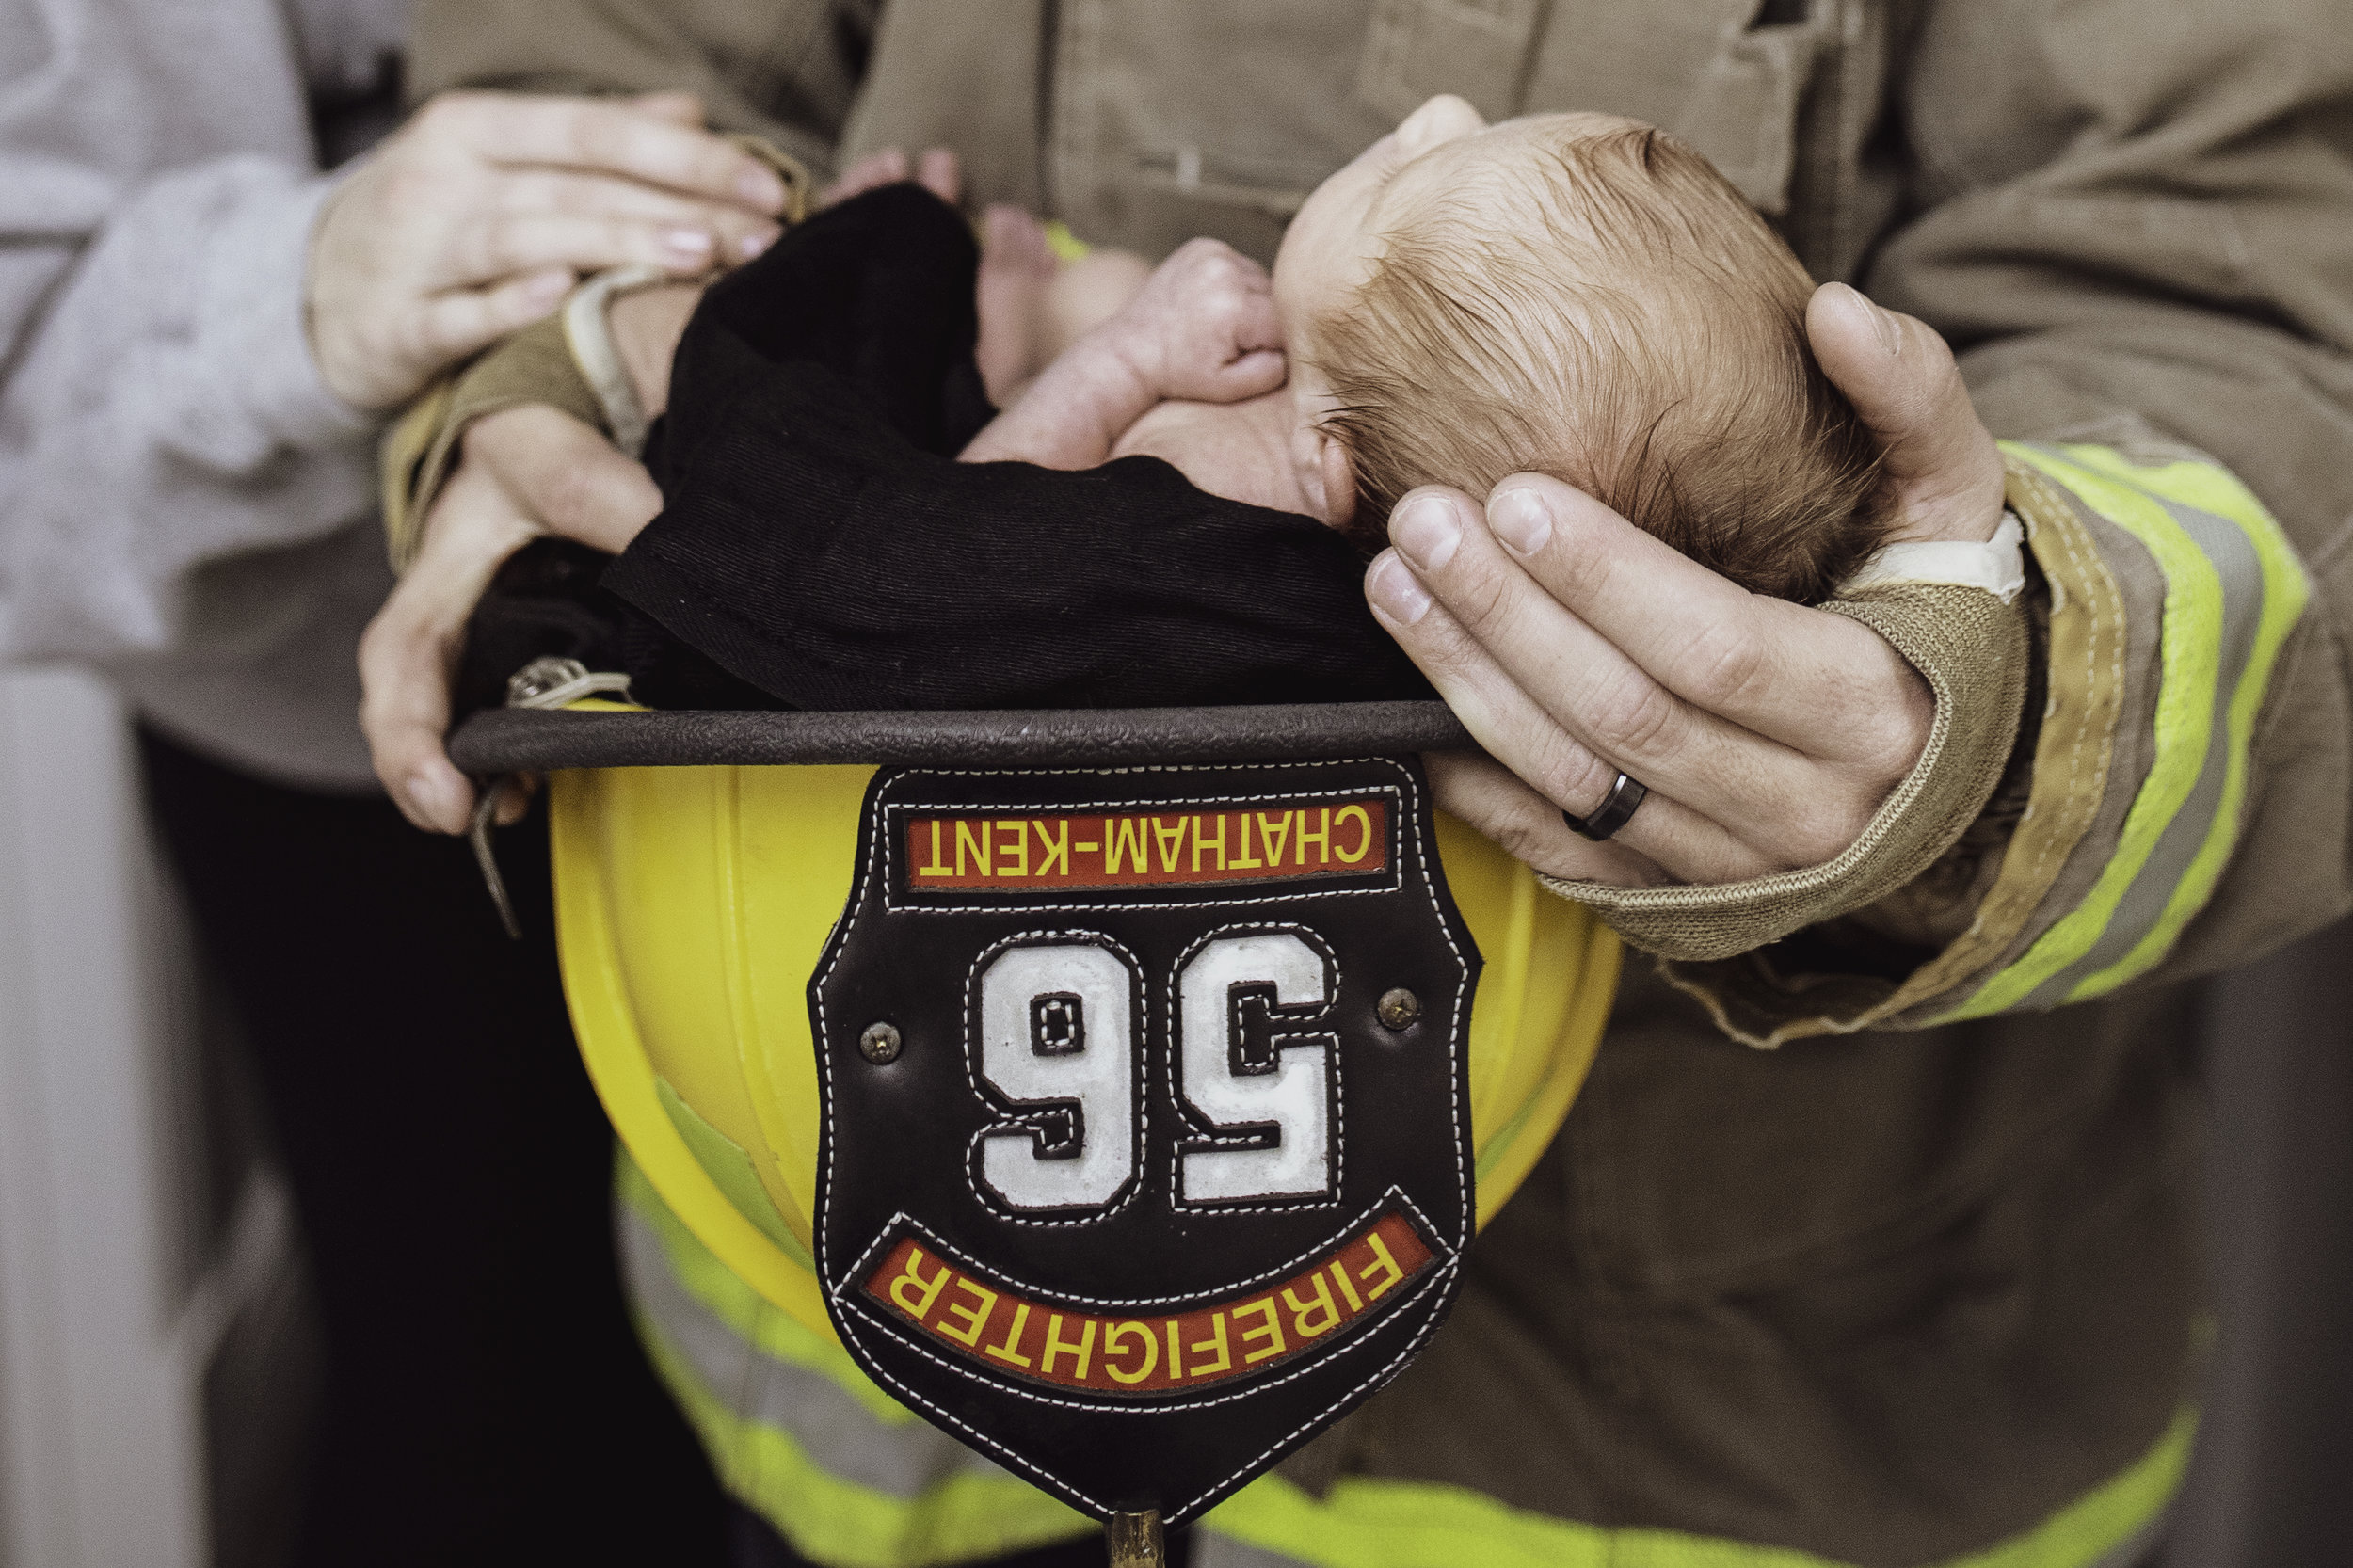 Newborn-London-Jodie-Aldred-Photography-Chatham-Middlesex-Lambton-Baby-firefighter-family-parents-ontario.jpg